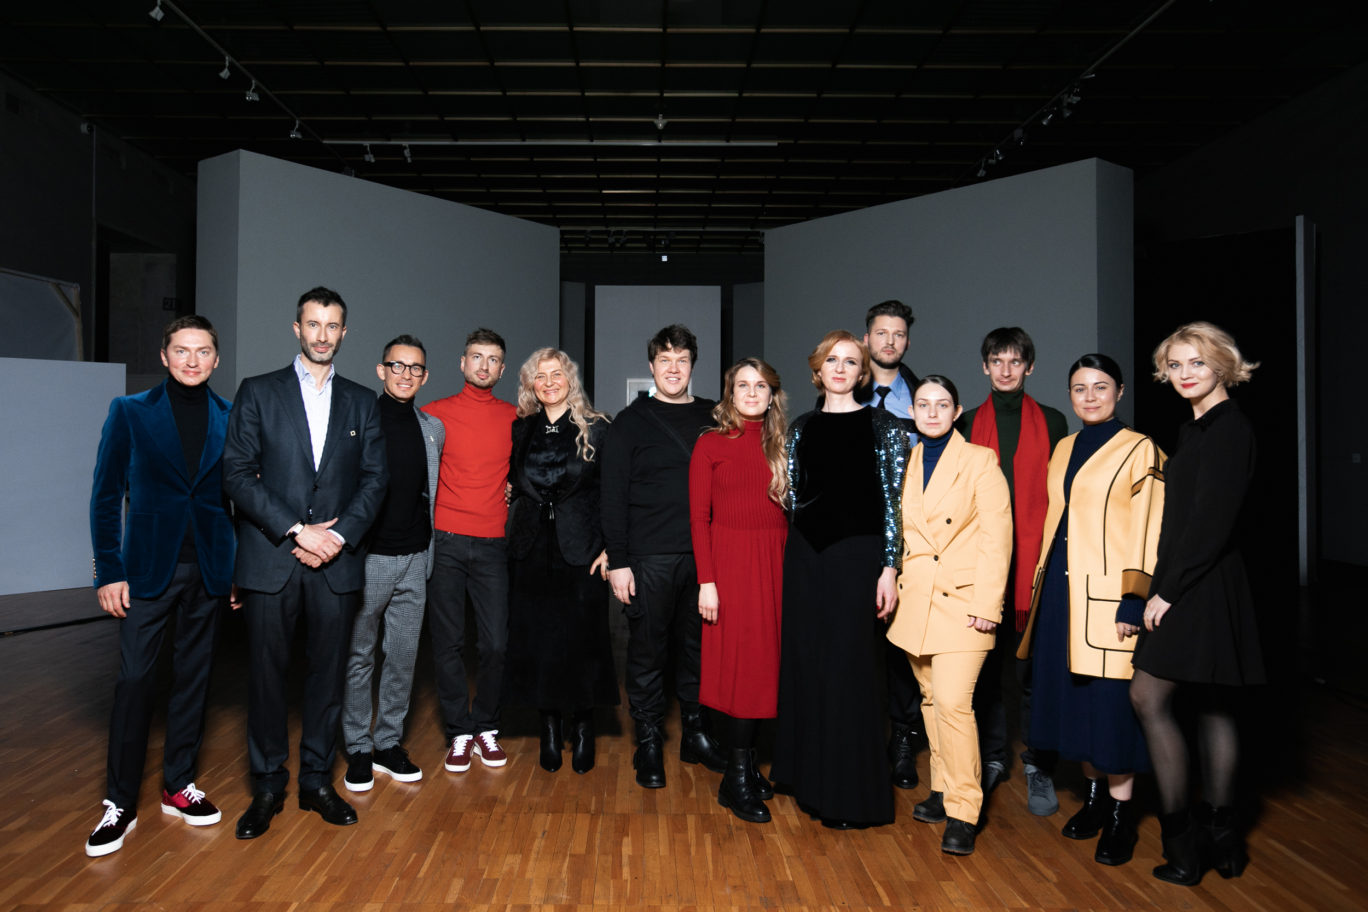 """""""Black Square"""" creative team at the opening night at Tretyakov's Gallery, November 27th 2018, Moscow, Russia. GQ Magazine coverage embedded."""